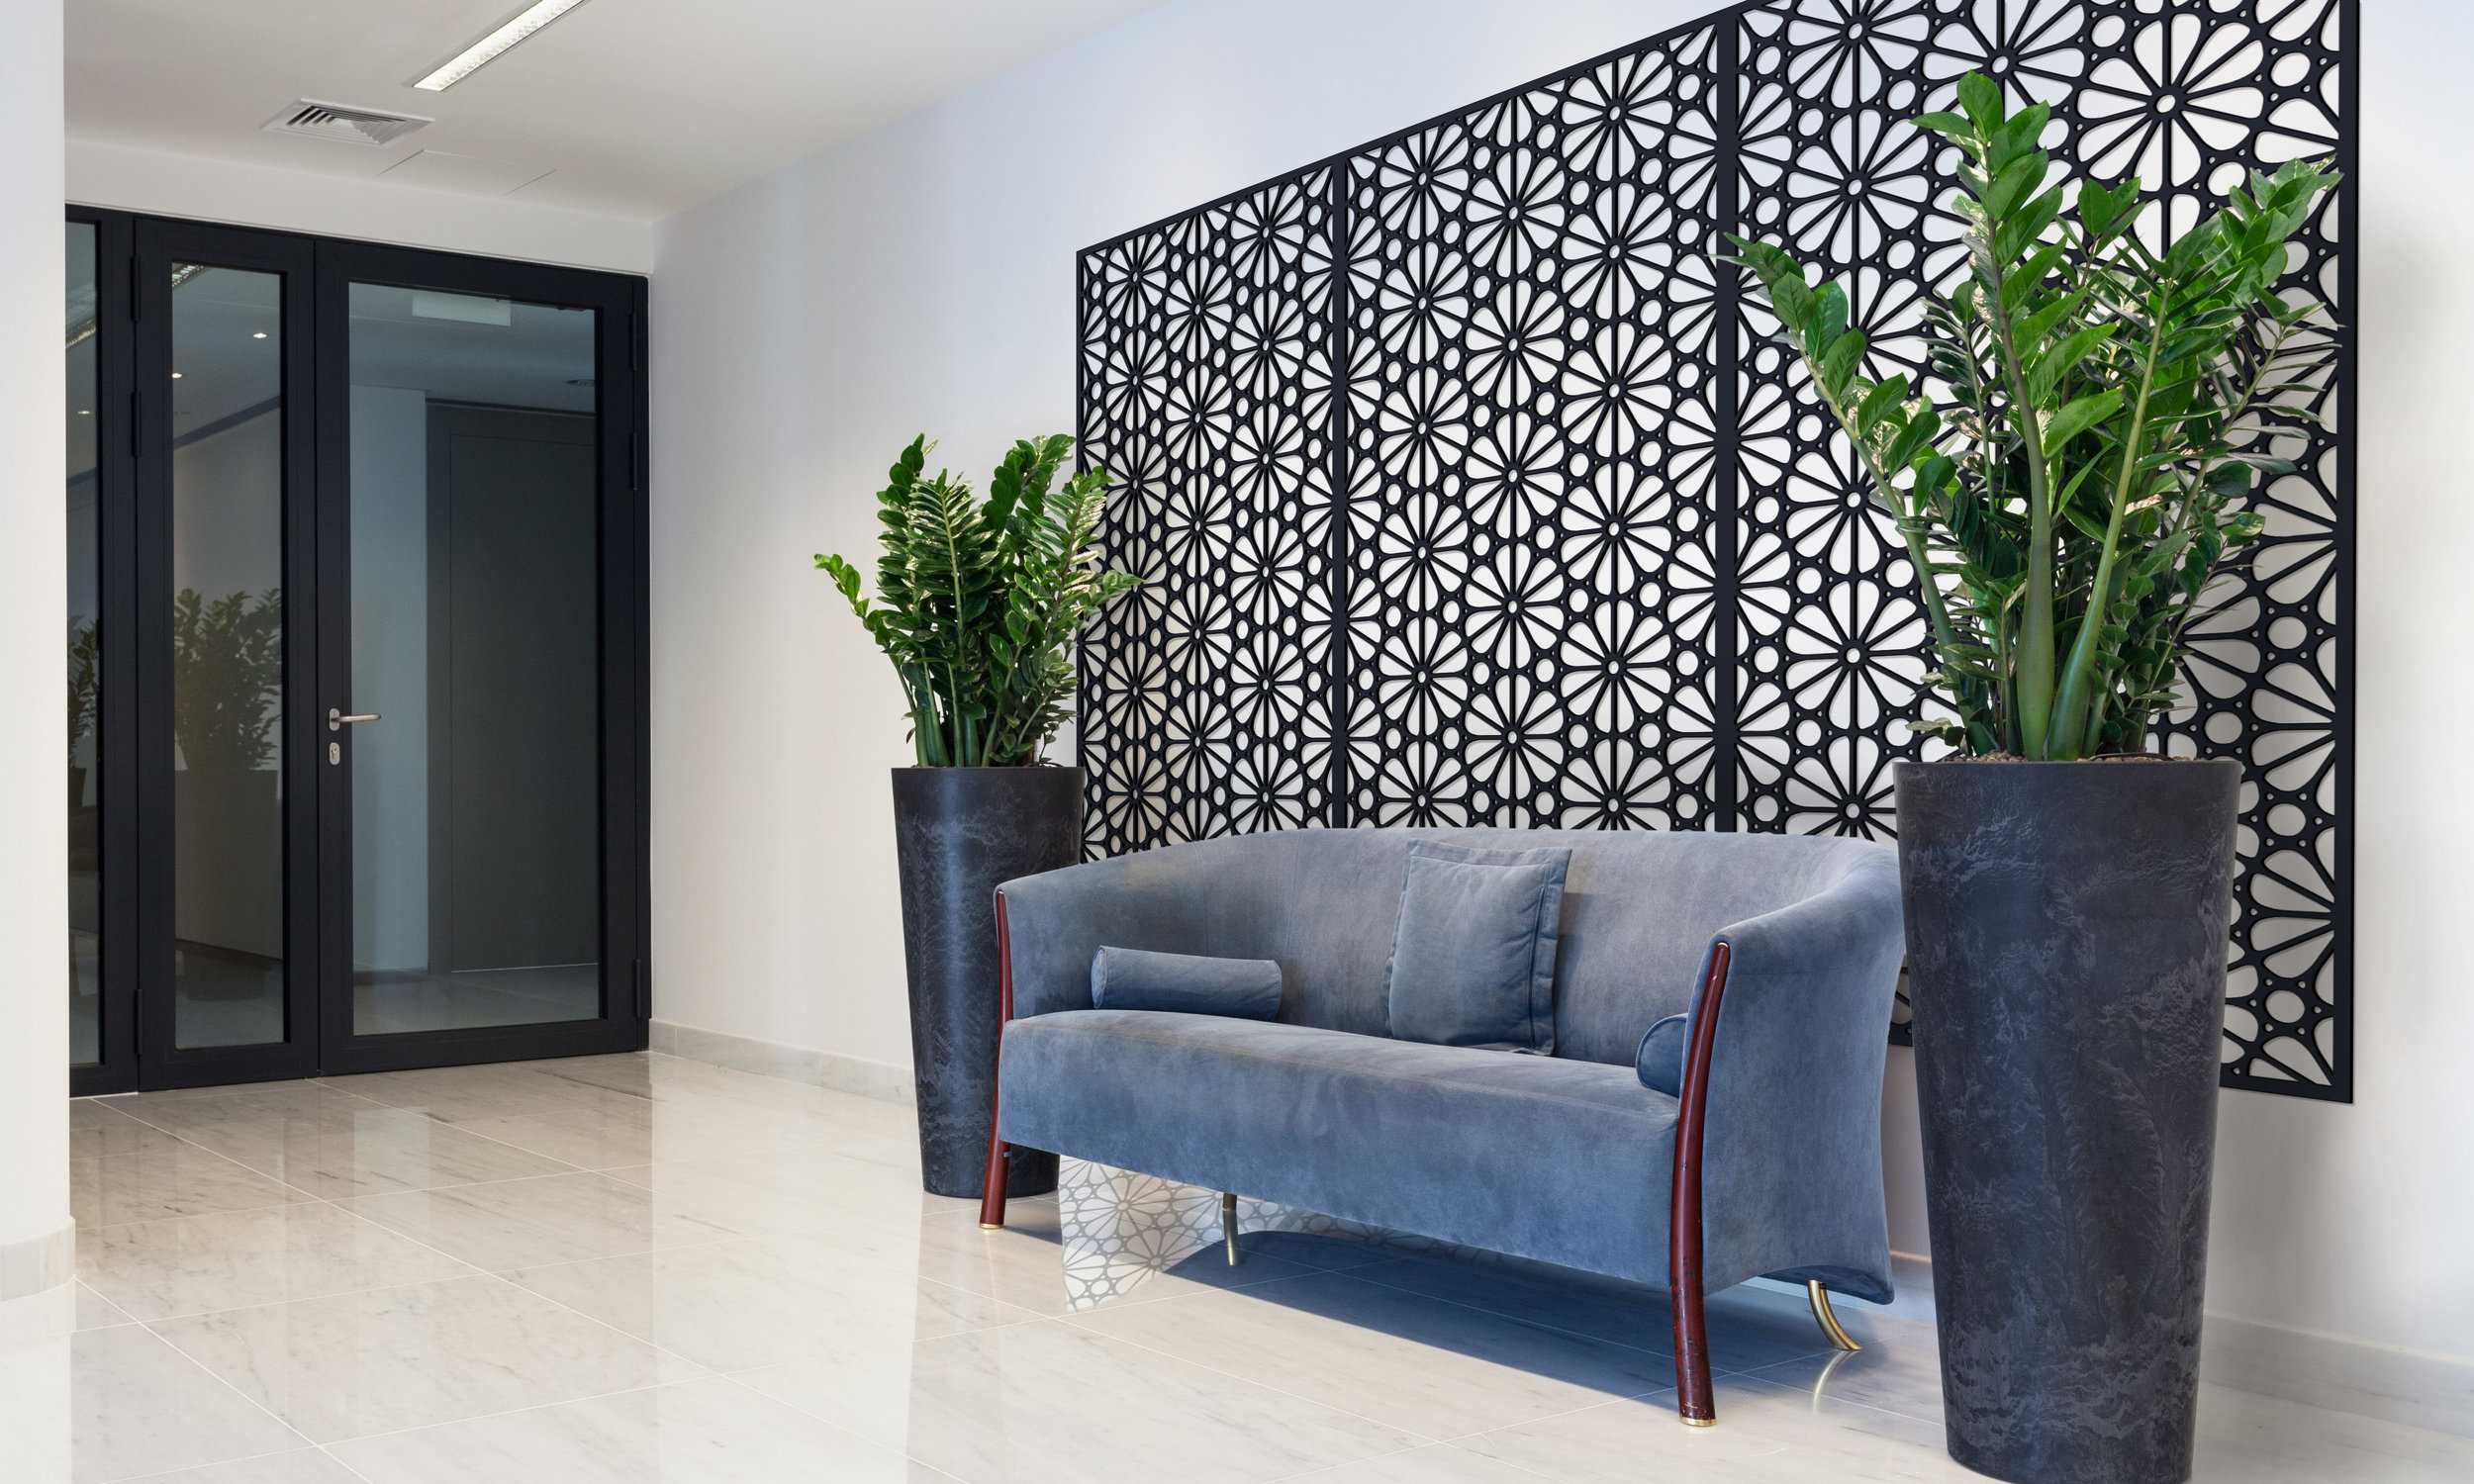 Installation Rendering B   Kyoto decorative office wall panel - painted